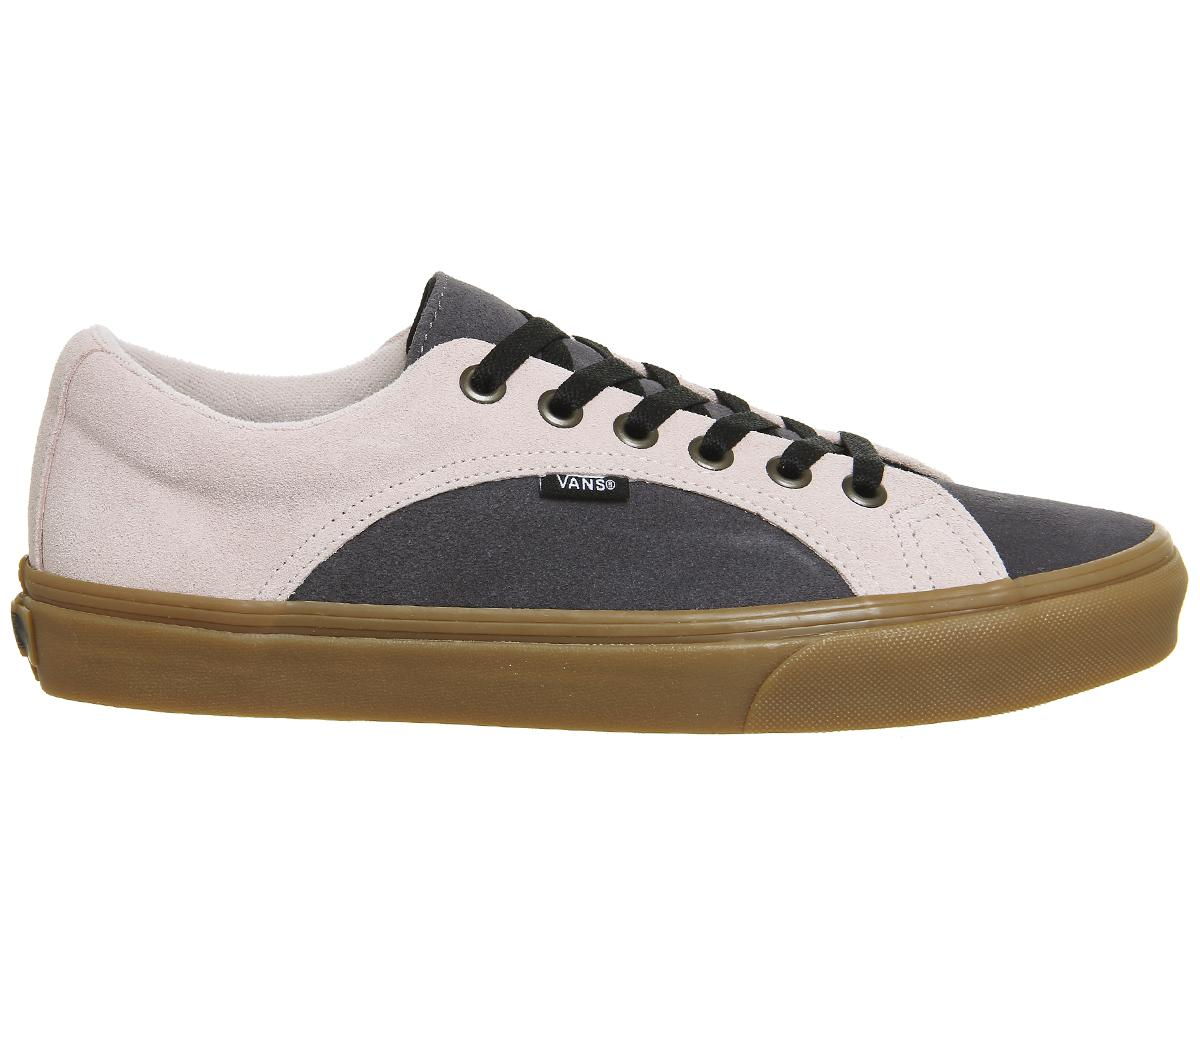 Vans Lampin Shoes